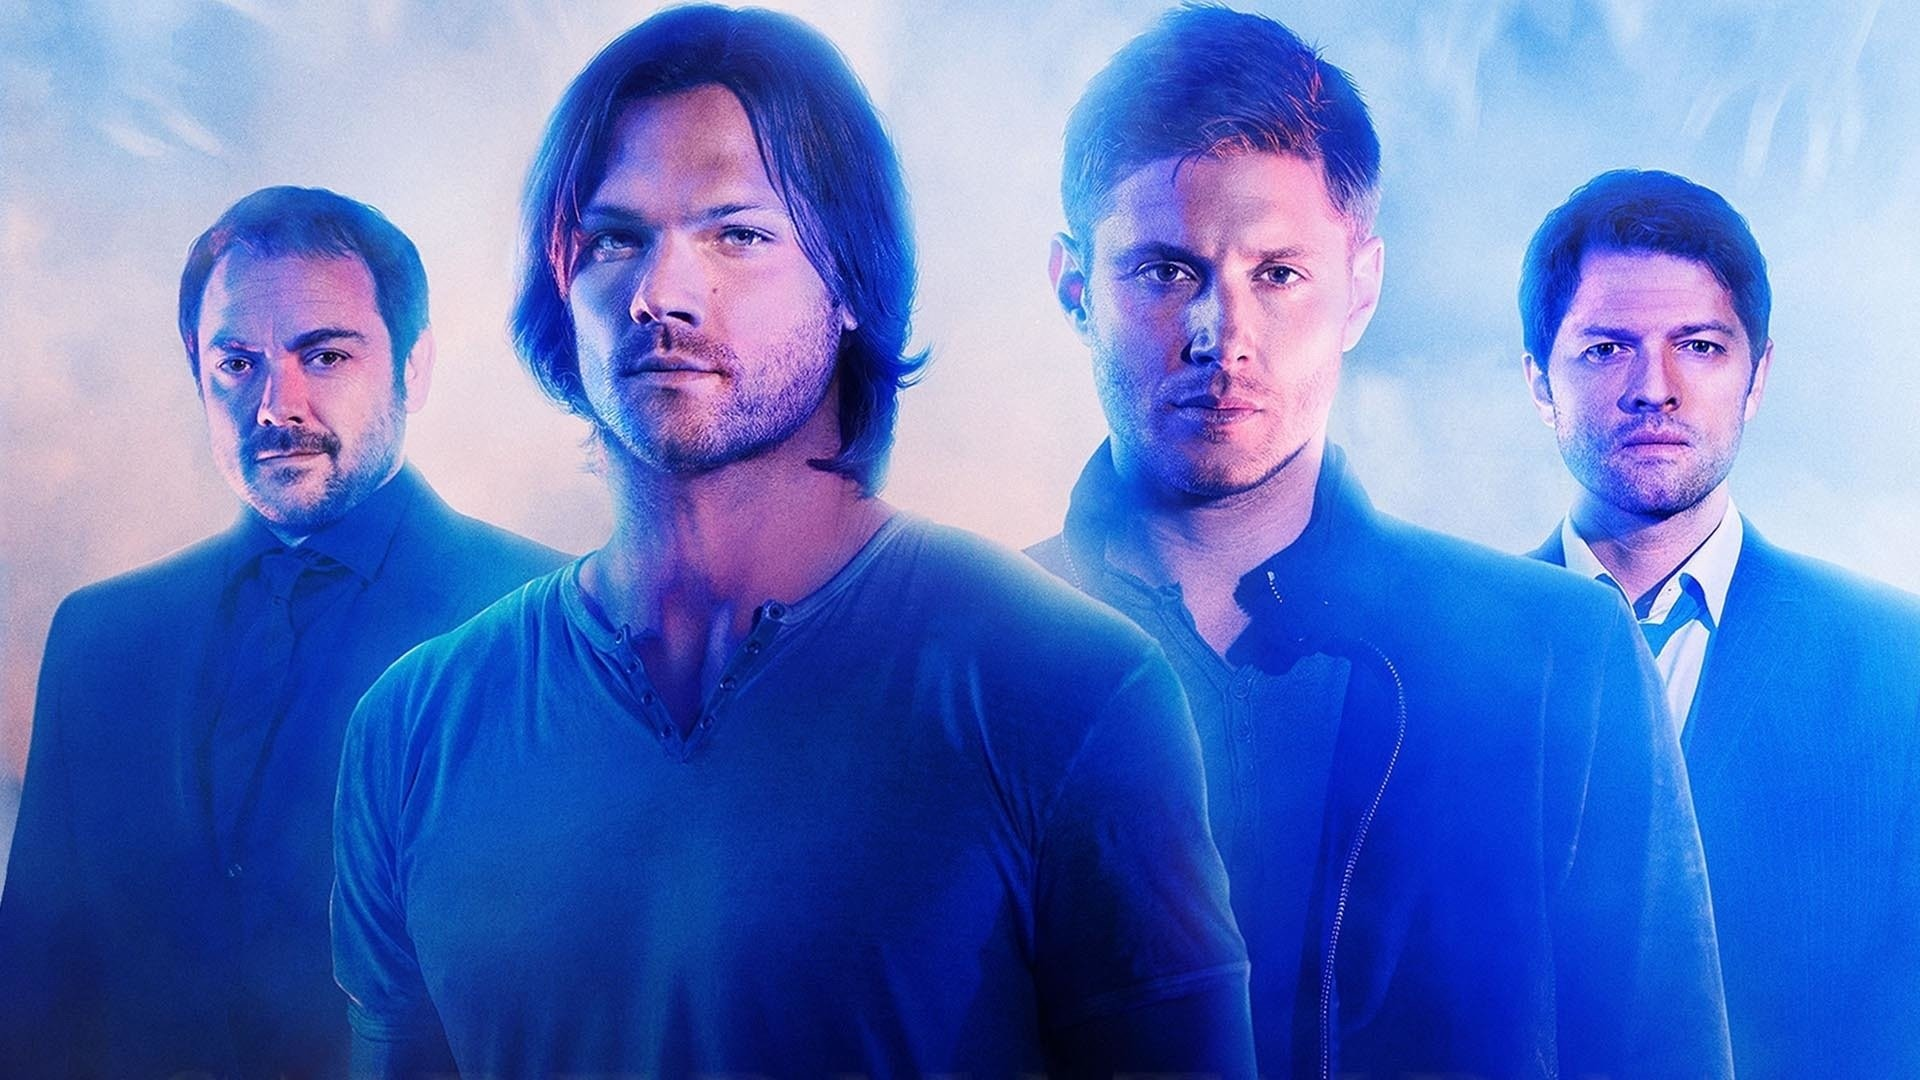 1920x1080 HD Wallpaper | Background ID:638573.  TV Show Supernatural